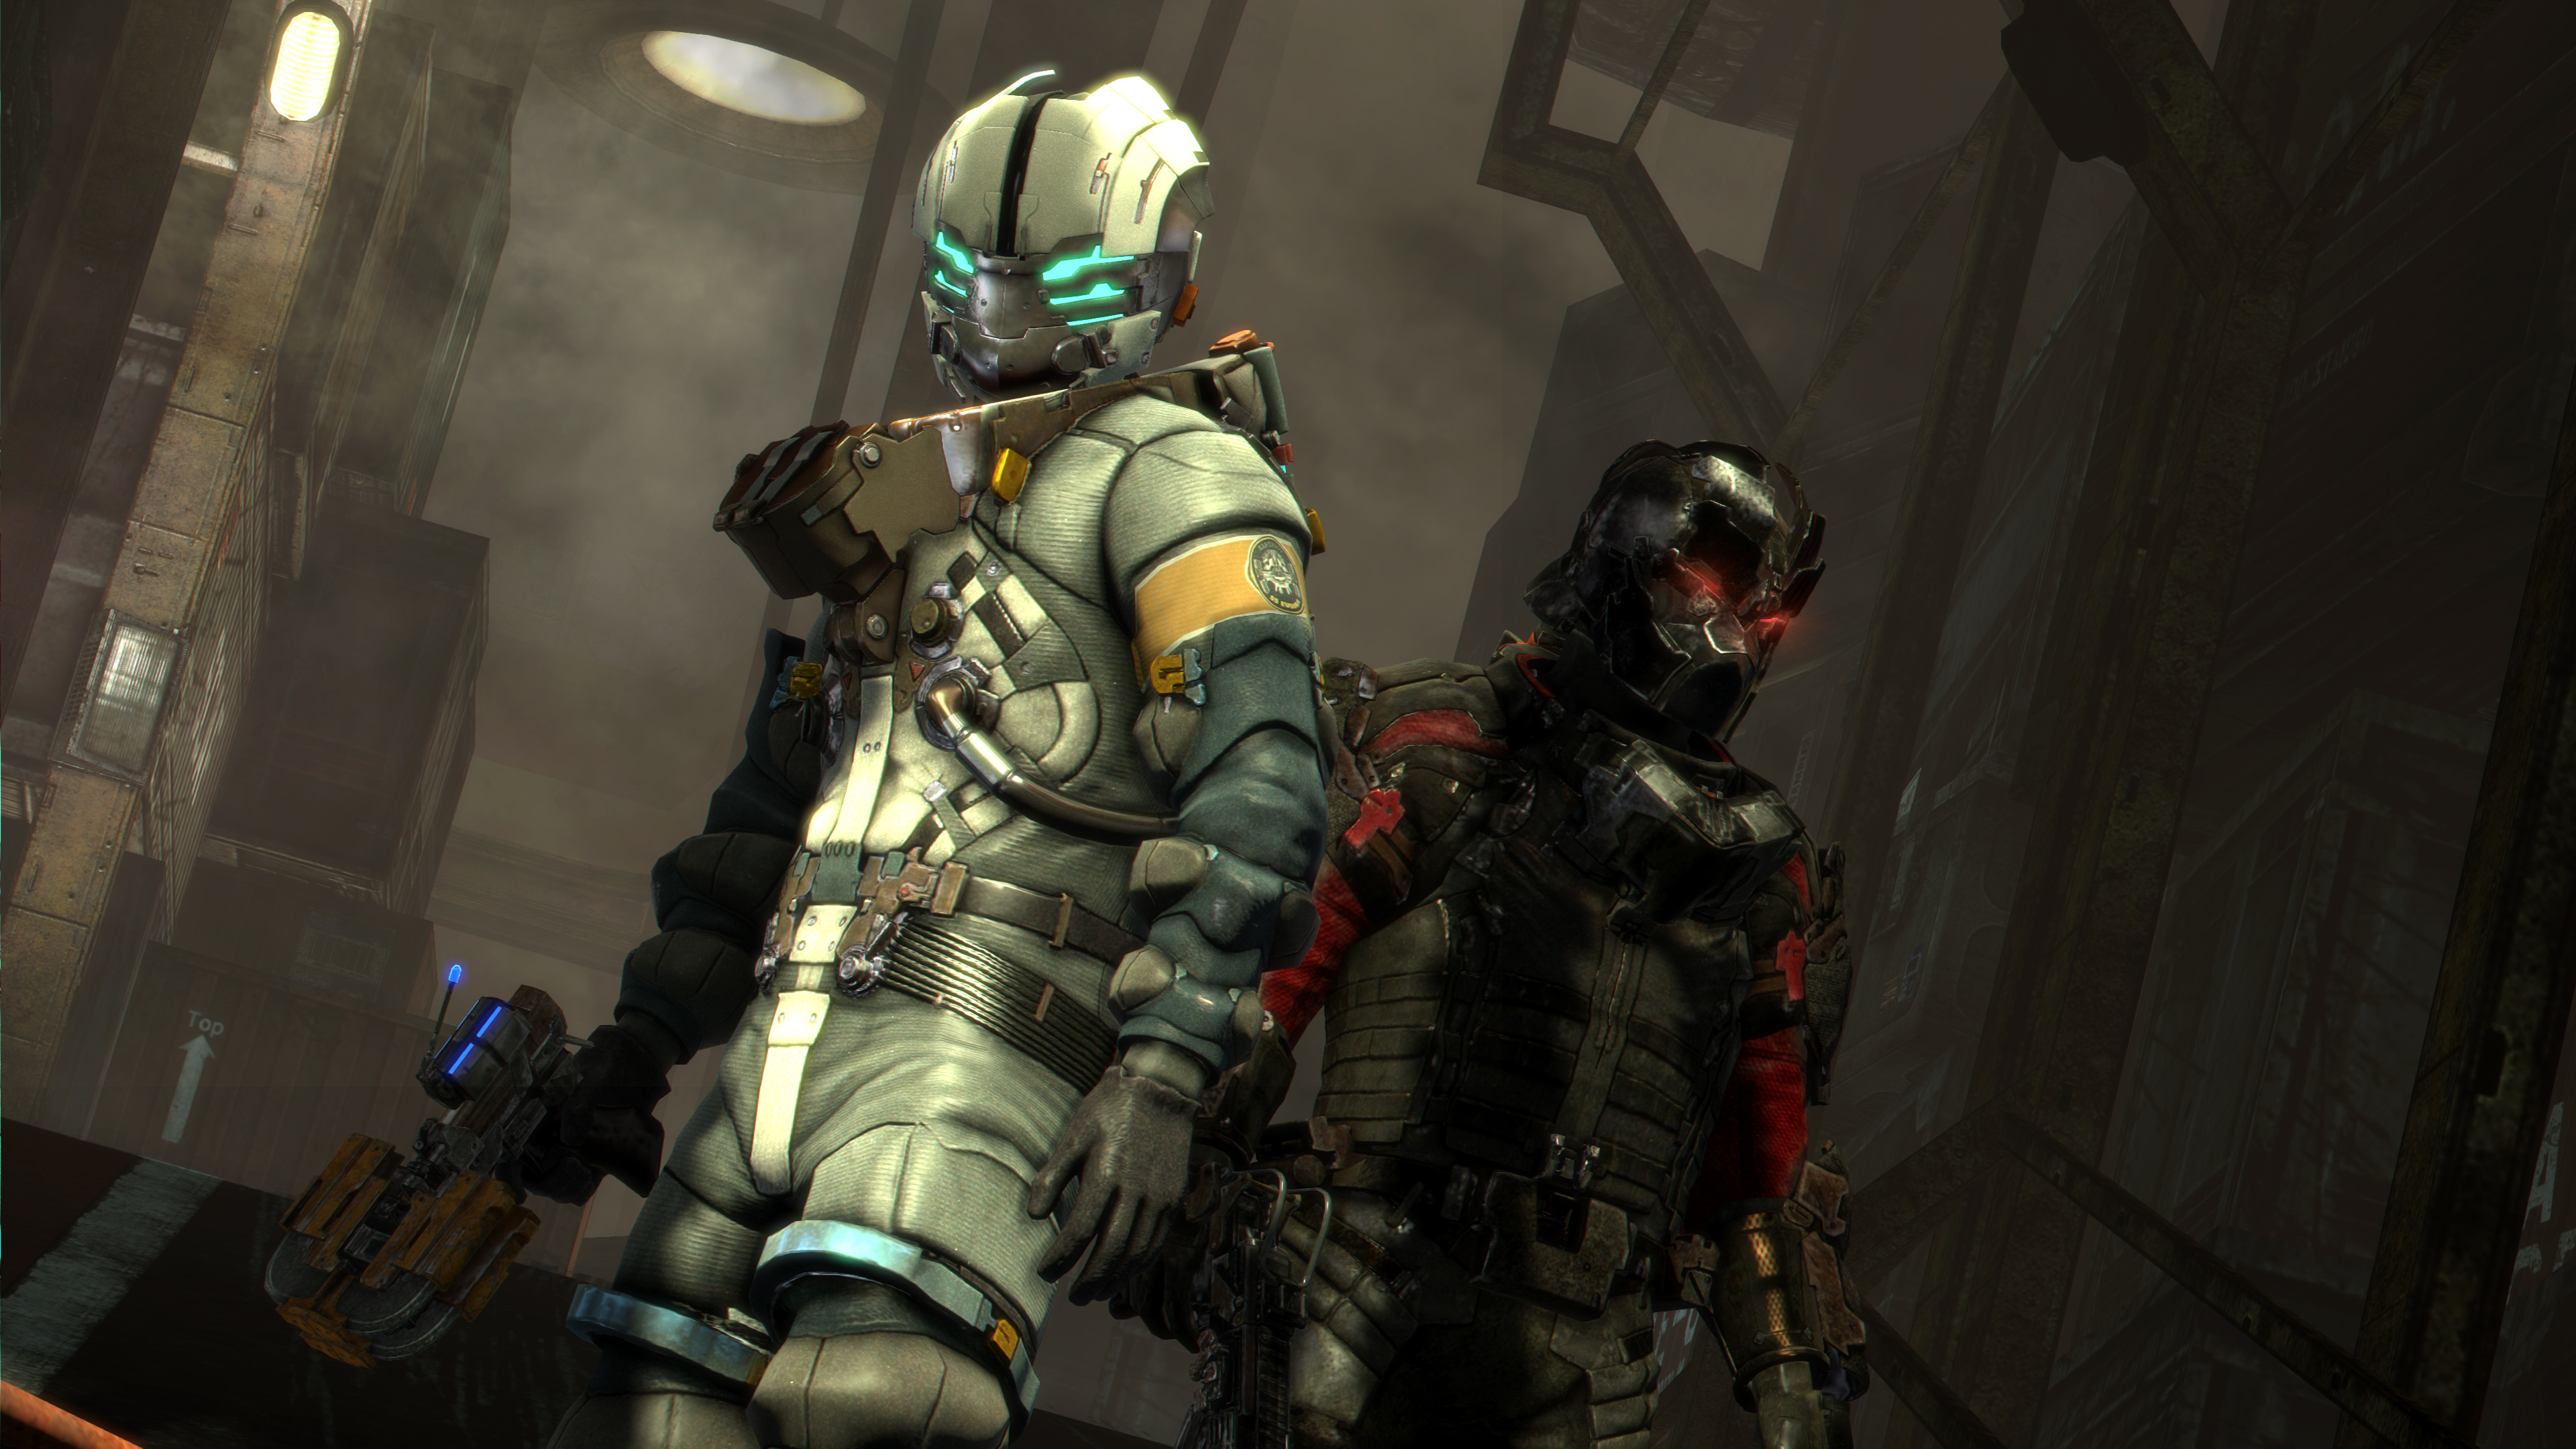 dead space 3 hd wallpapers i have a pc. Black Bedroom Furniture Sets. Home Design Ideas